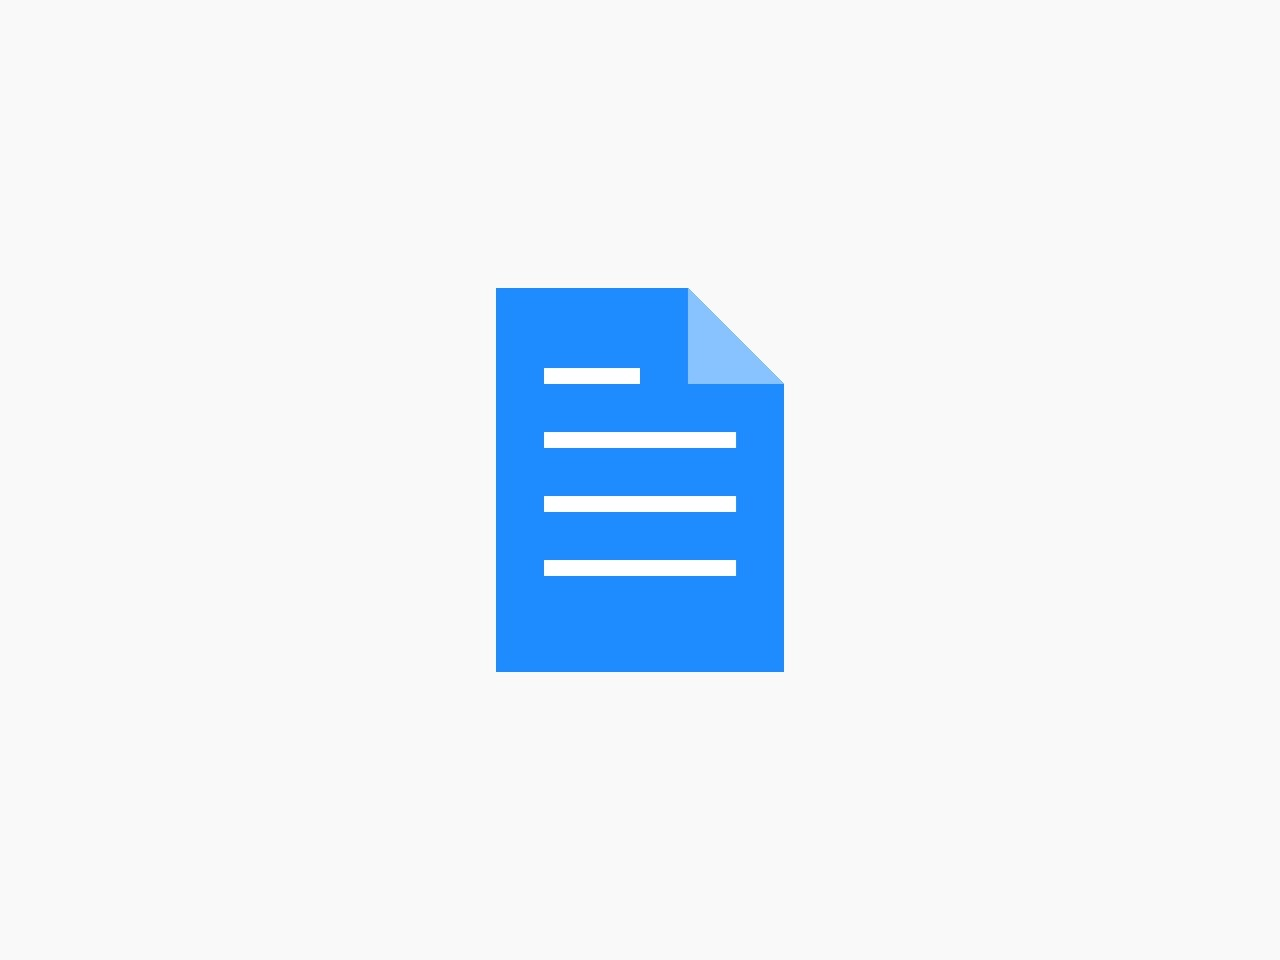 Healthways Expands on Strategic Collaborations, Eyes Growth – Analyst Blog